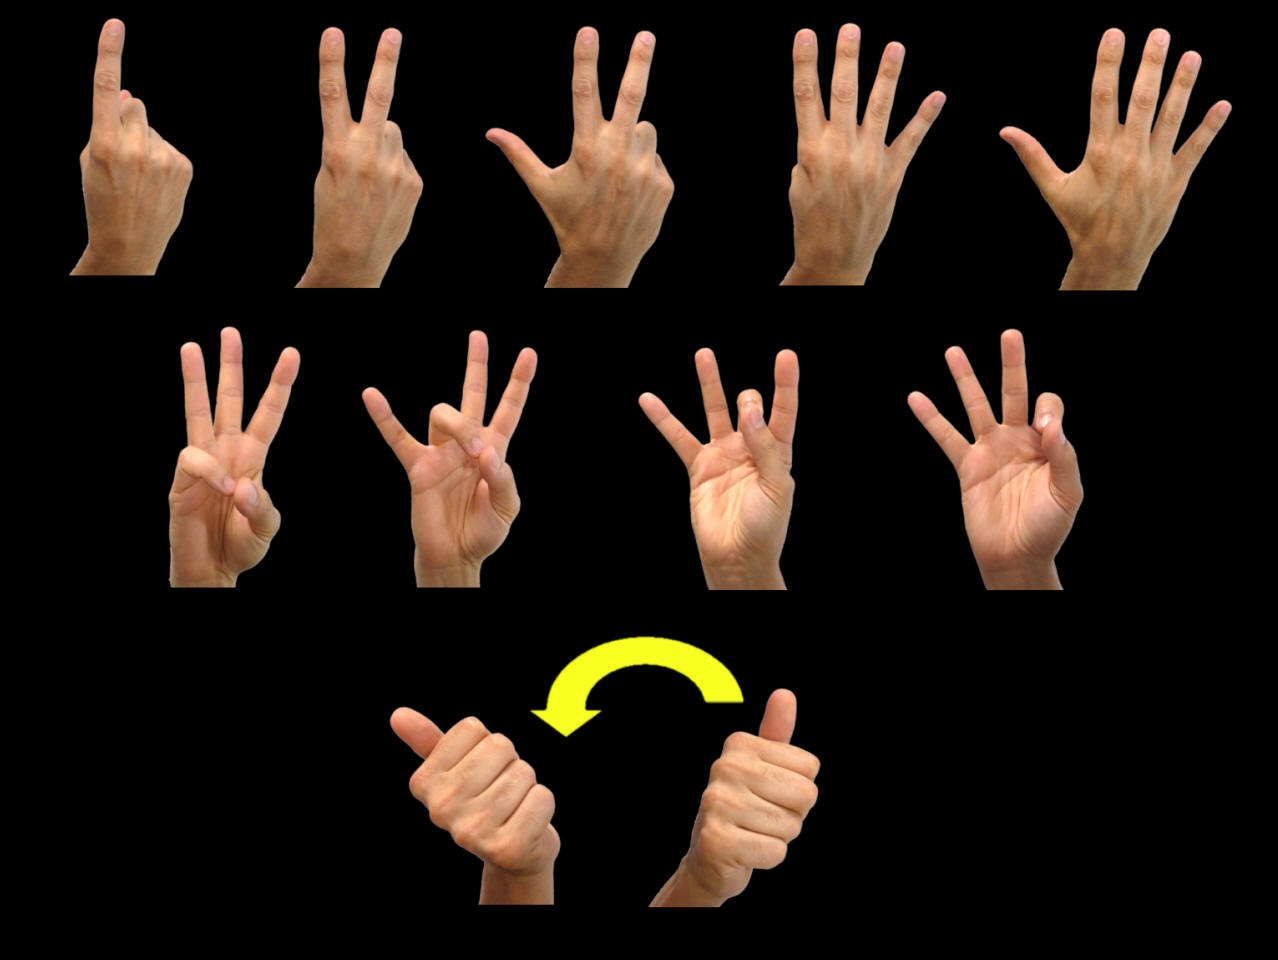 American Sign Language Numbers 1 to 10 Google image from http://www.lifeprint.com/asl101/pages-signs/n/numbers.htm